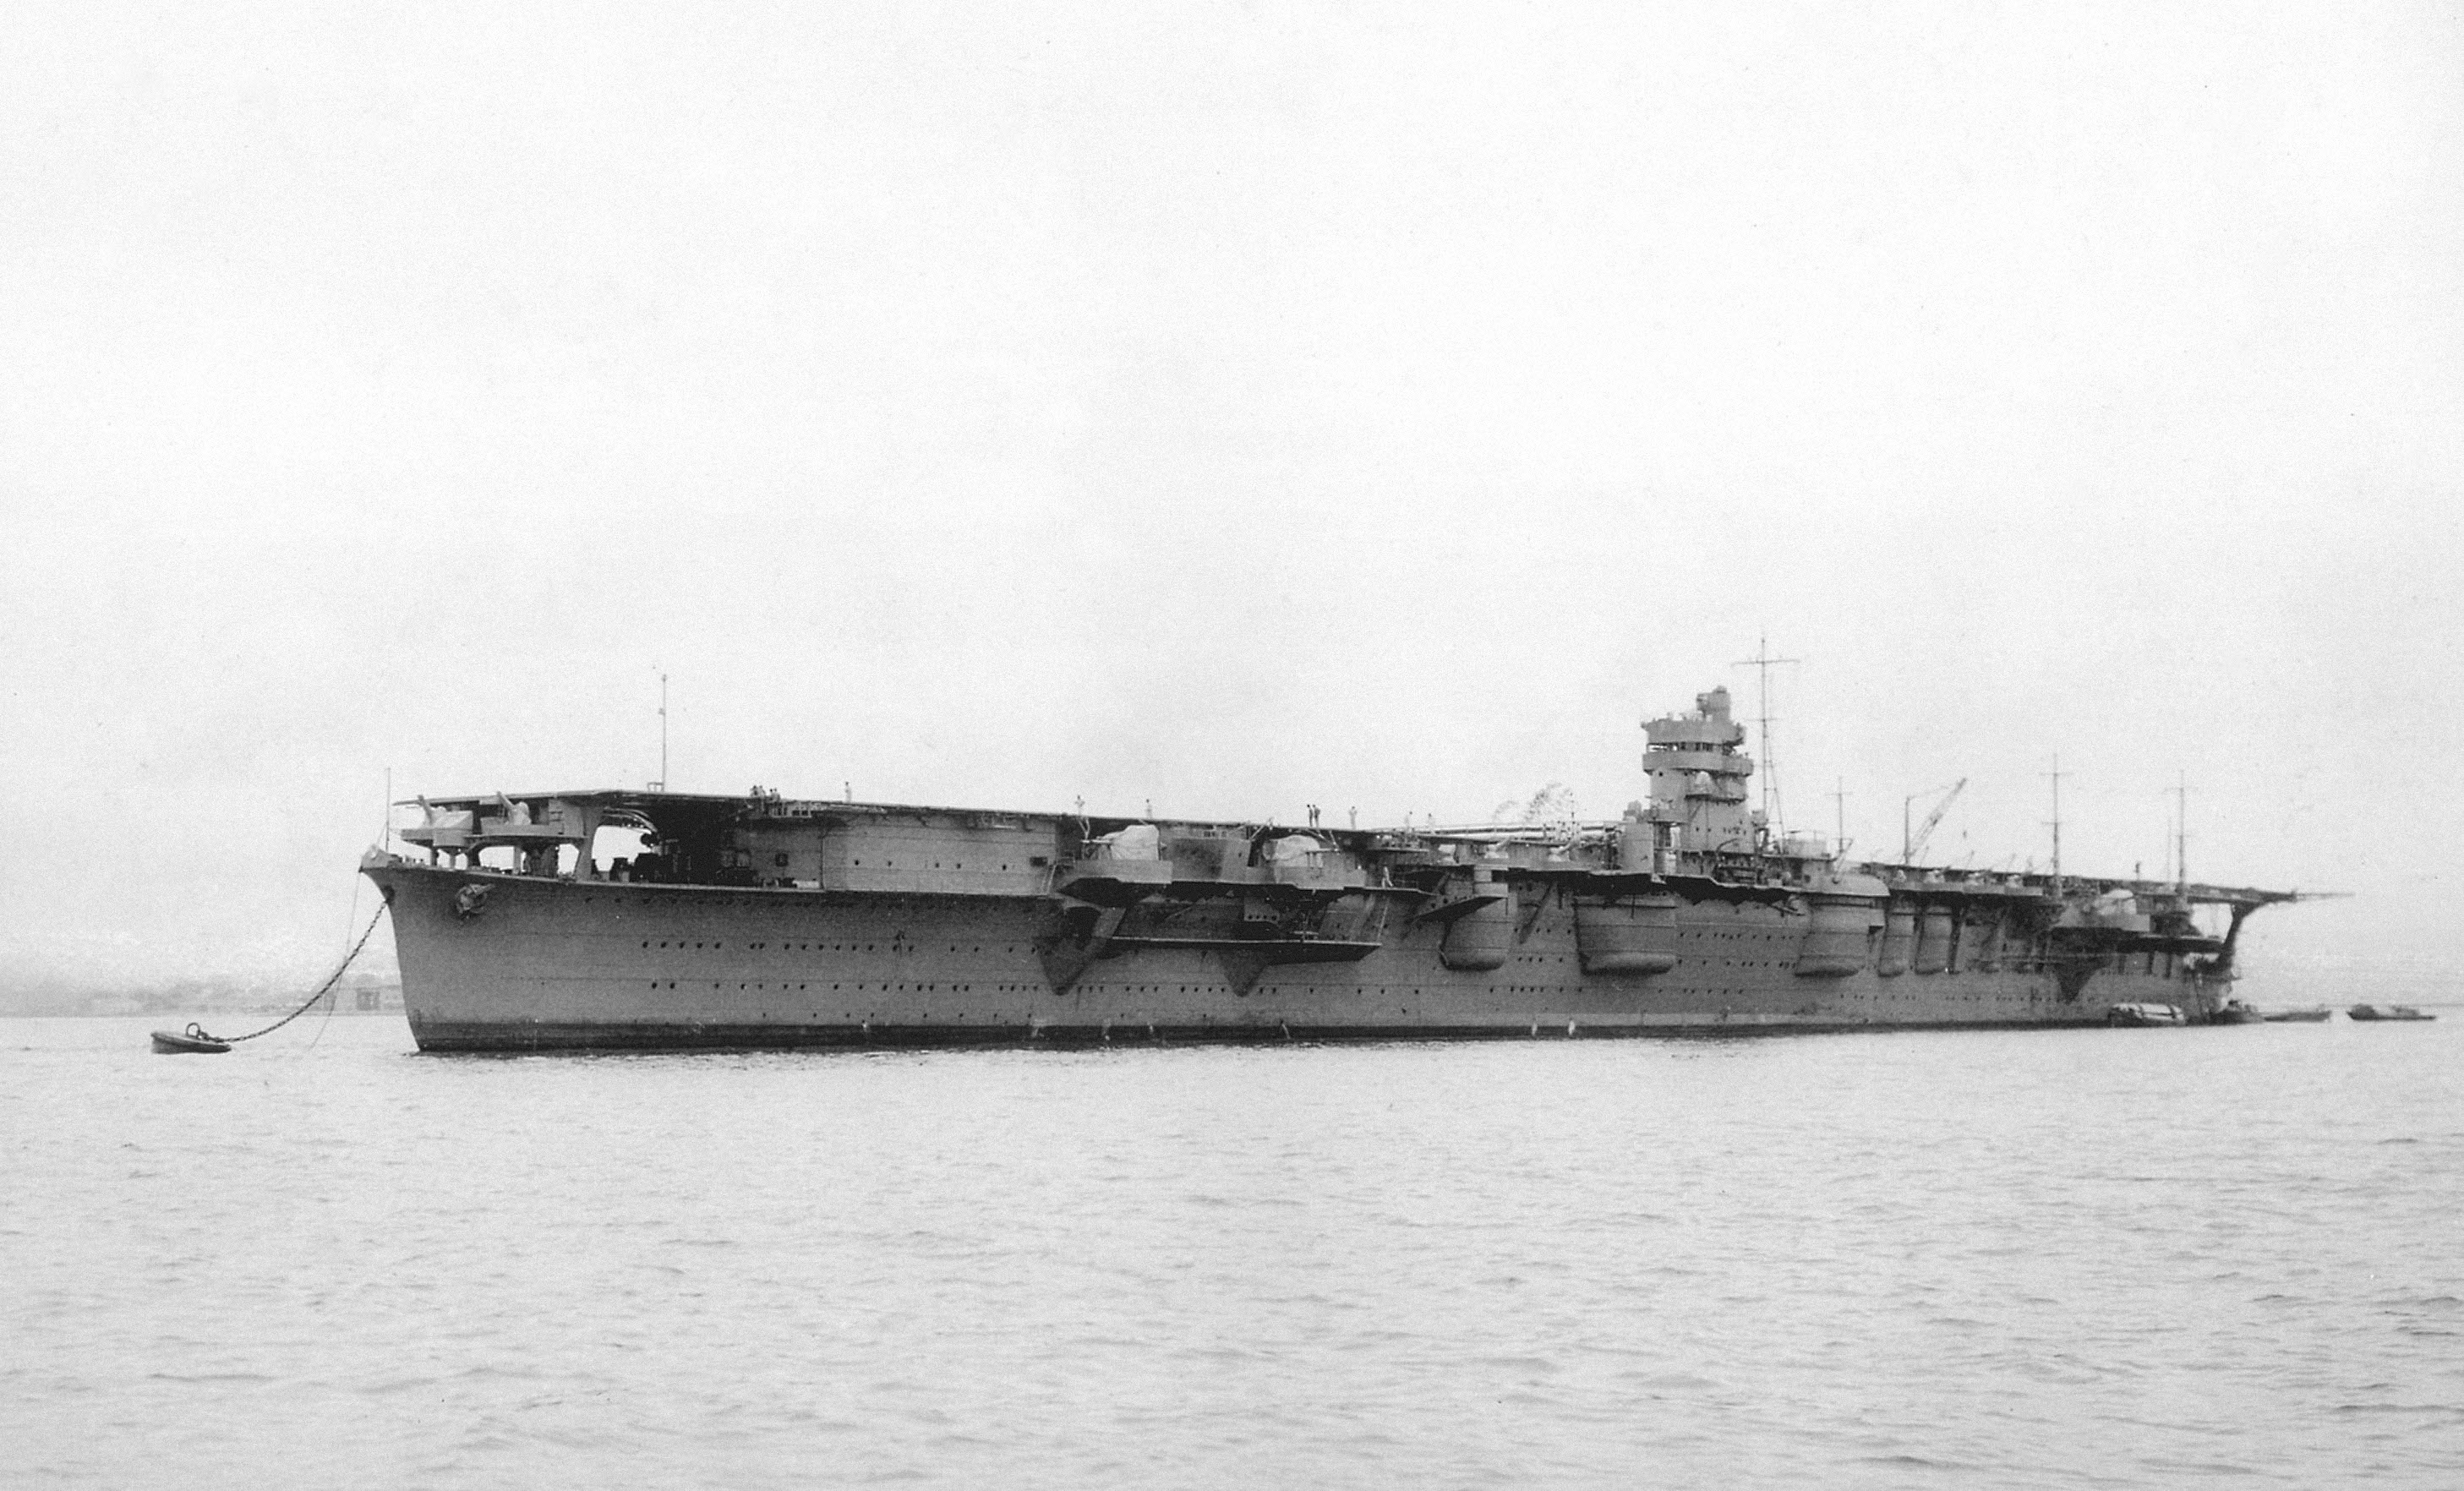 Japanese_aircraft_carrier_Hiryu_1939.jpg